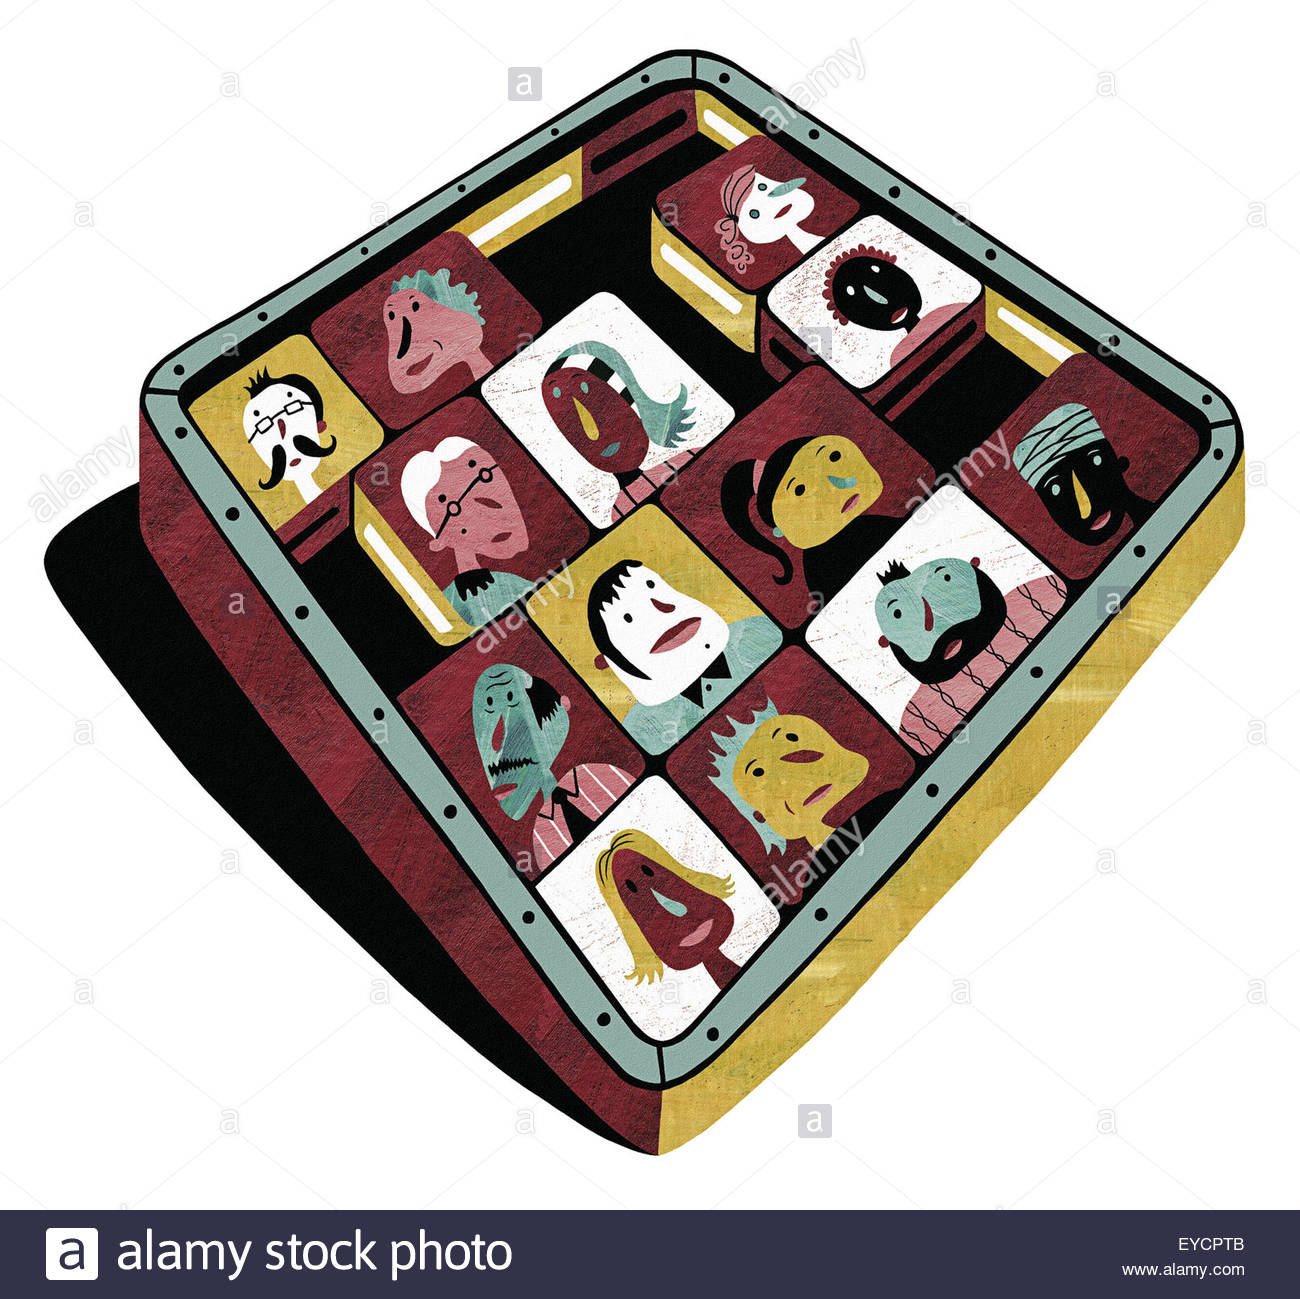 Sliding square tile puzzle with faces of different people - Stock Image